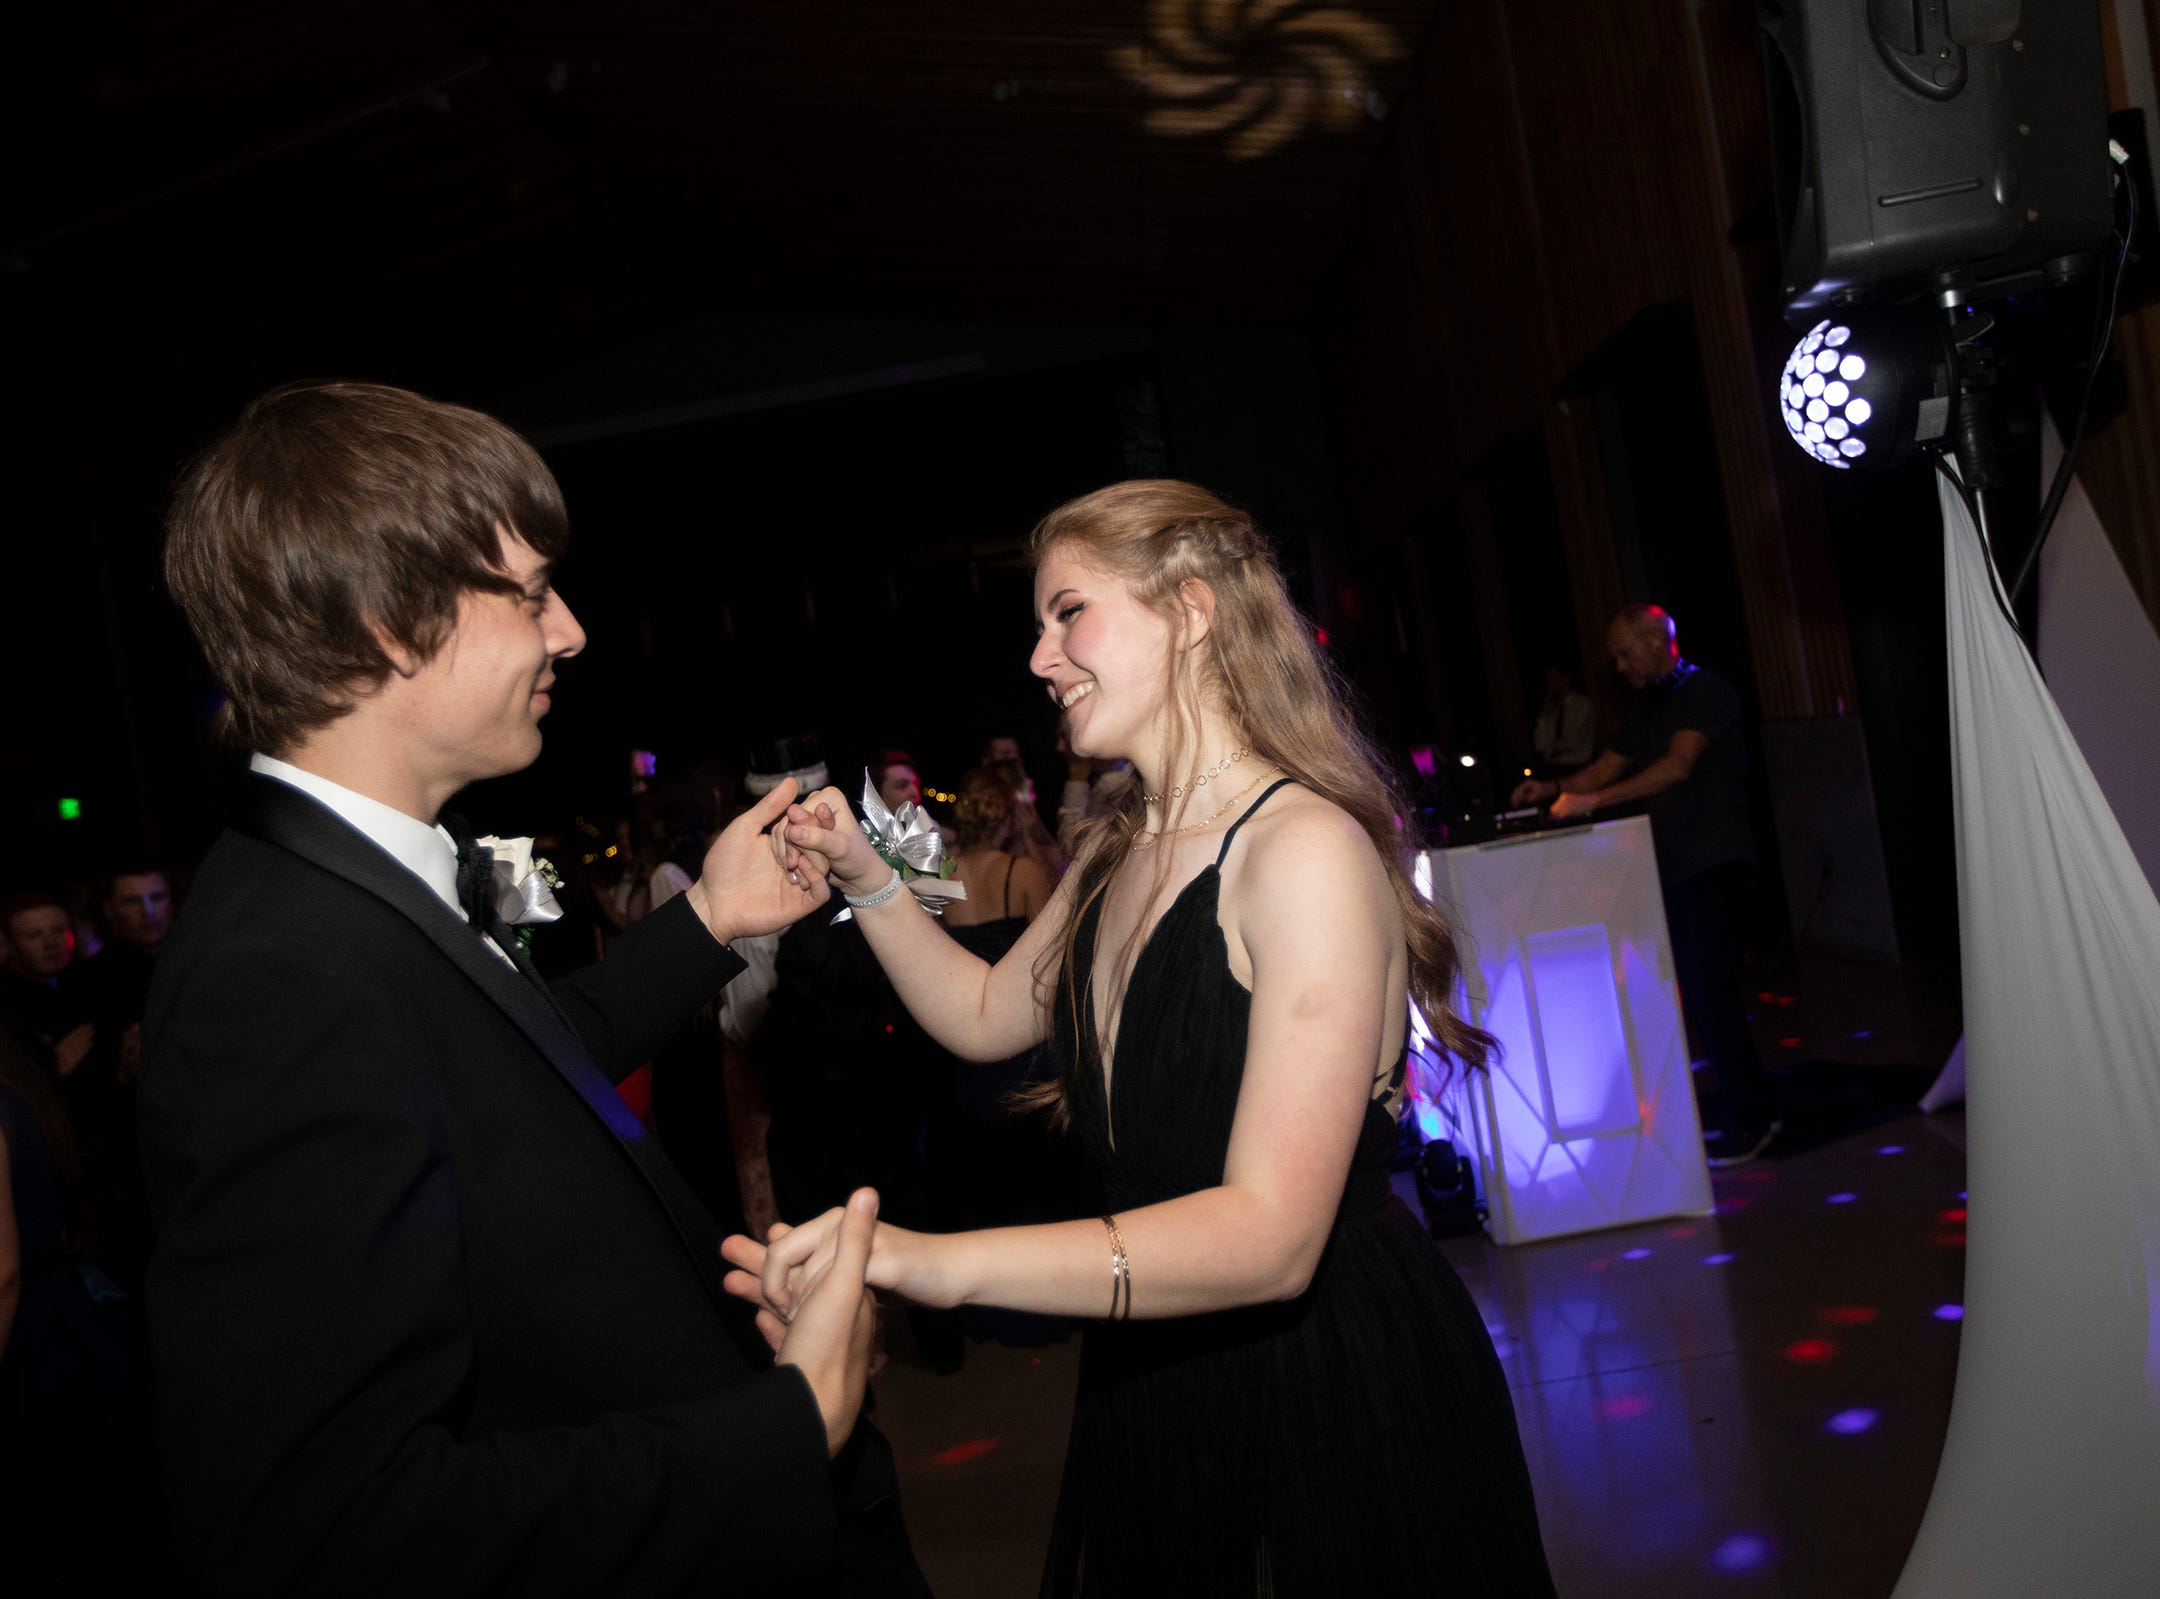 Kyle Mattson and Rylee Schaecher dance during the Dallas High School prom at the Dallas Armory on Saturday, May 12.